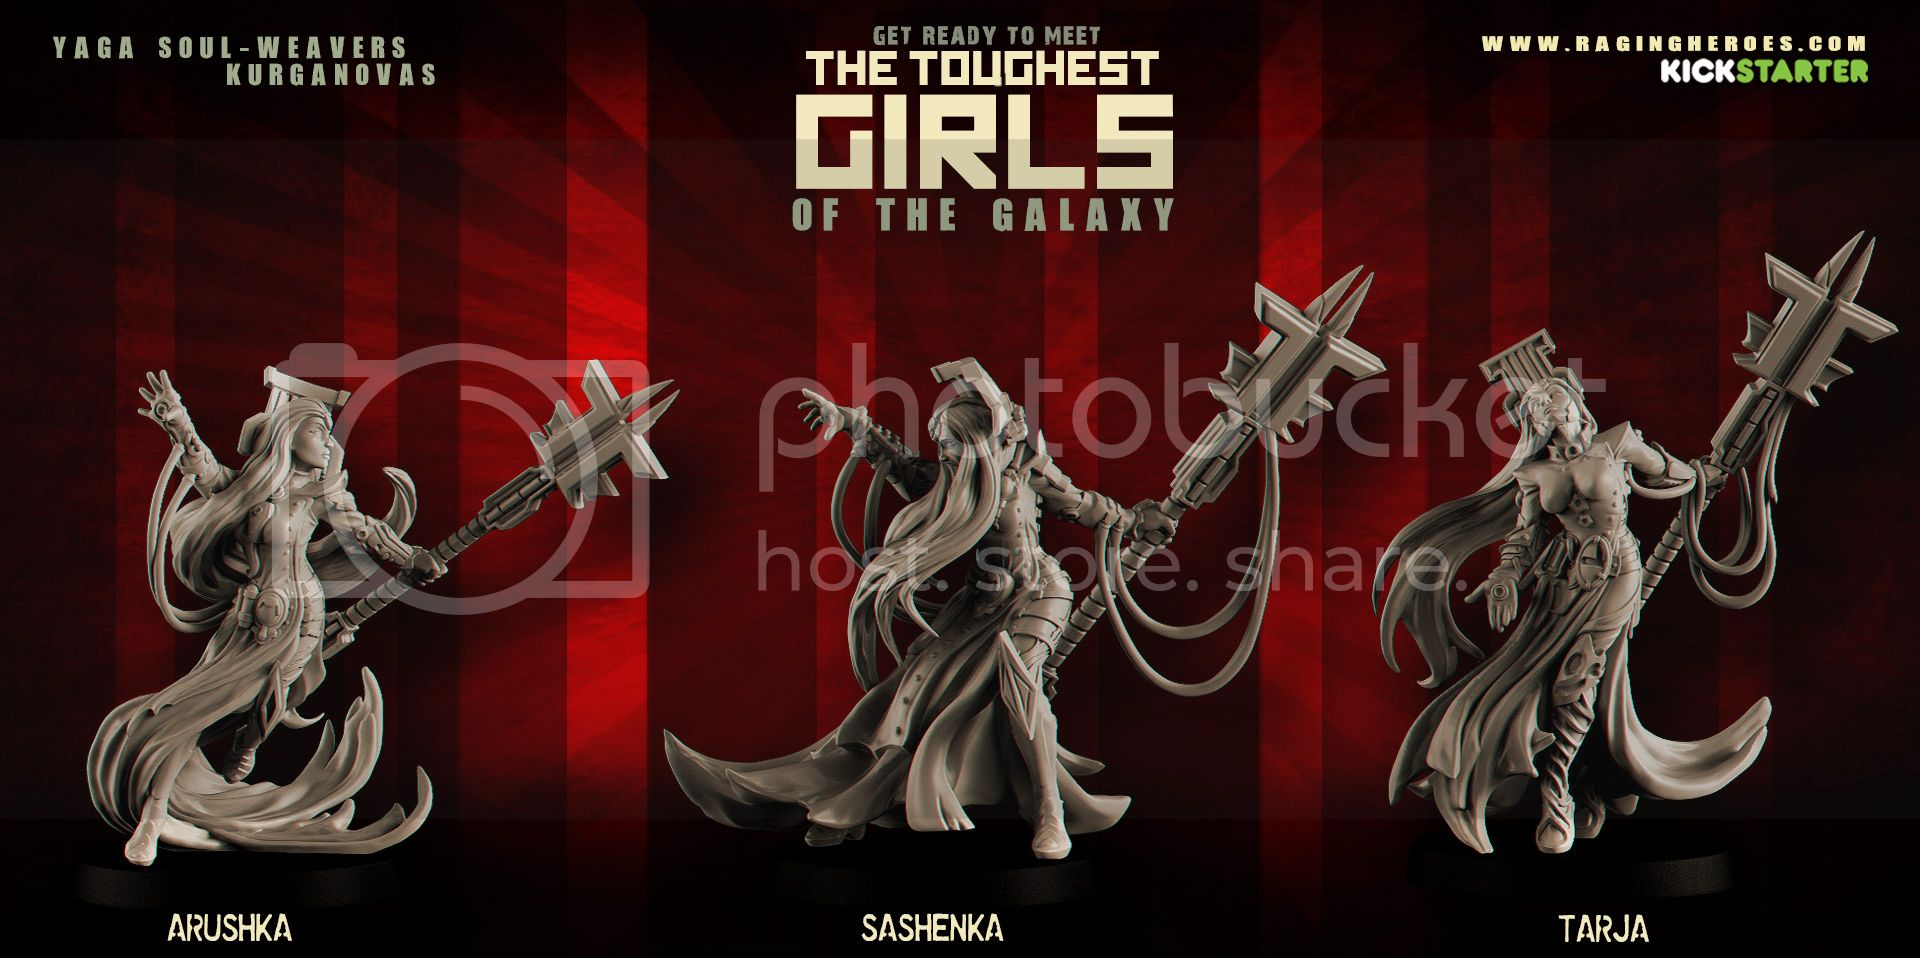 [Raging Heroes] The Toughest Girls of the Galaxy Yagas-3-FIGS_zps1acd5b67